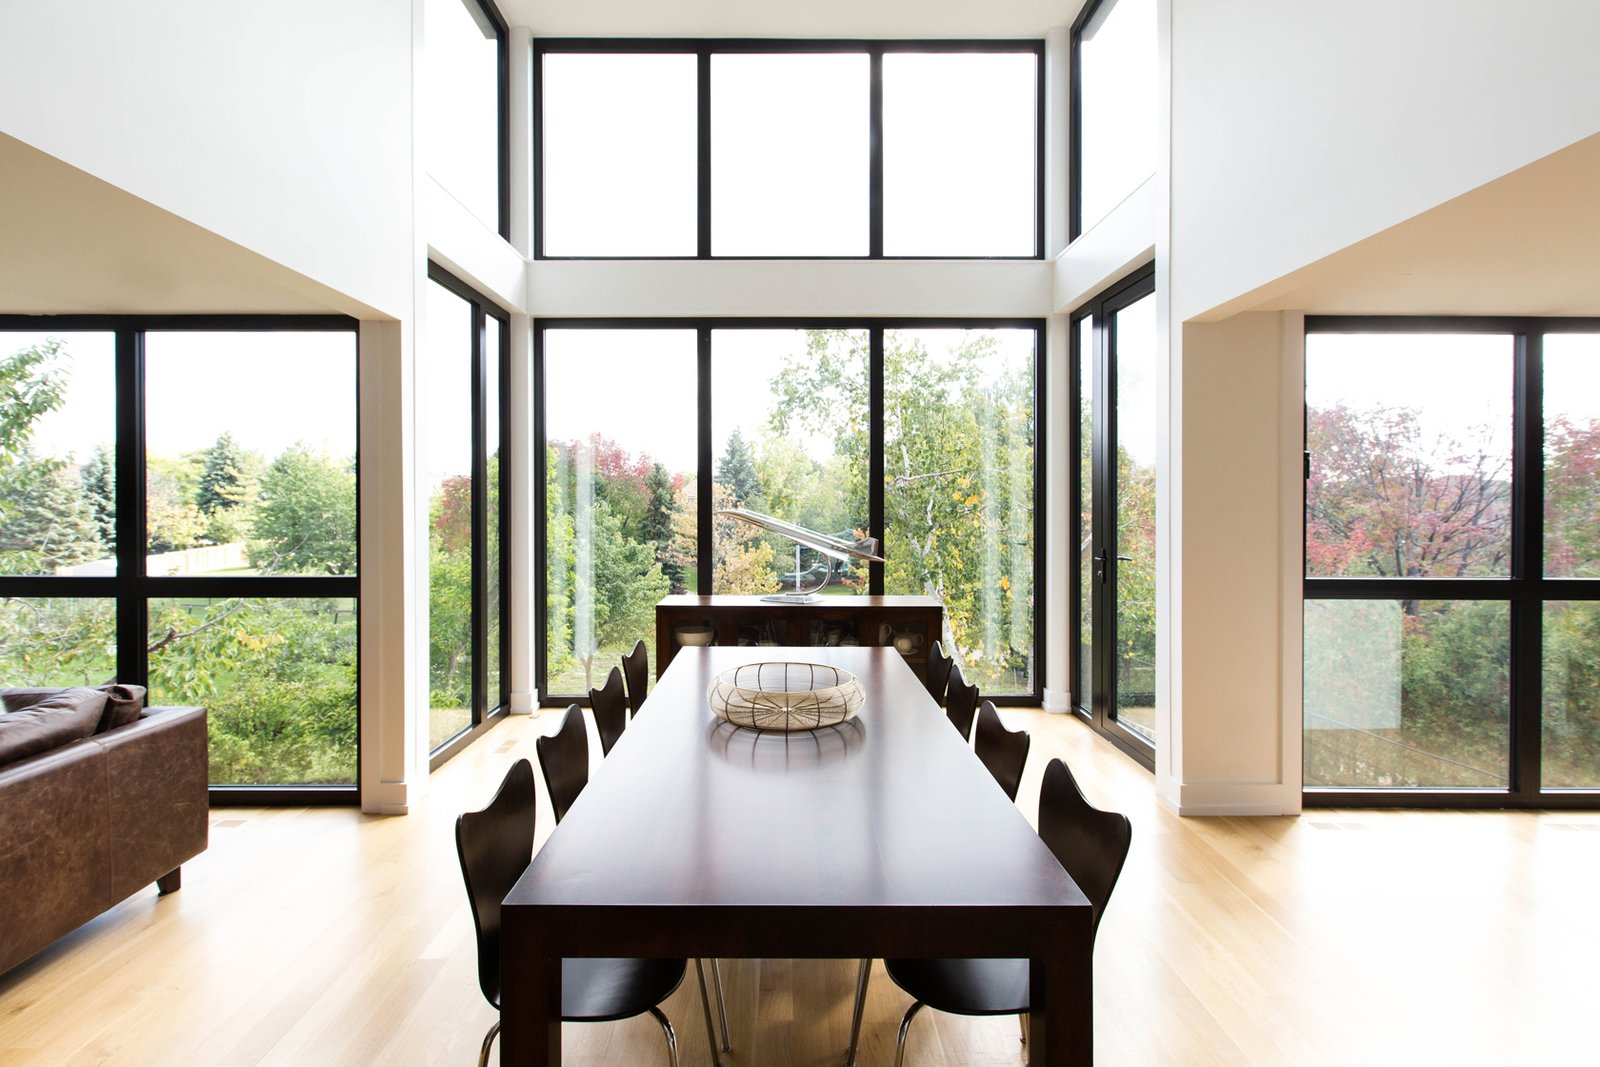 The extensive use of wood on the interiors ties the house back to nature, as views of the ravine in the backyard can be enjoyed through the massive floor-to-ceiling windows along the kitchen and whole rear wall of the home.